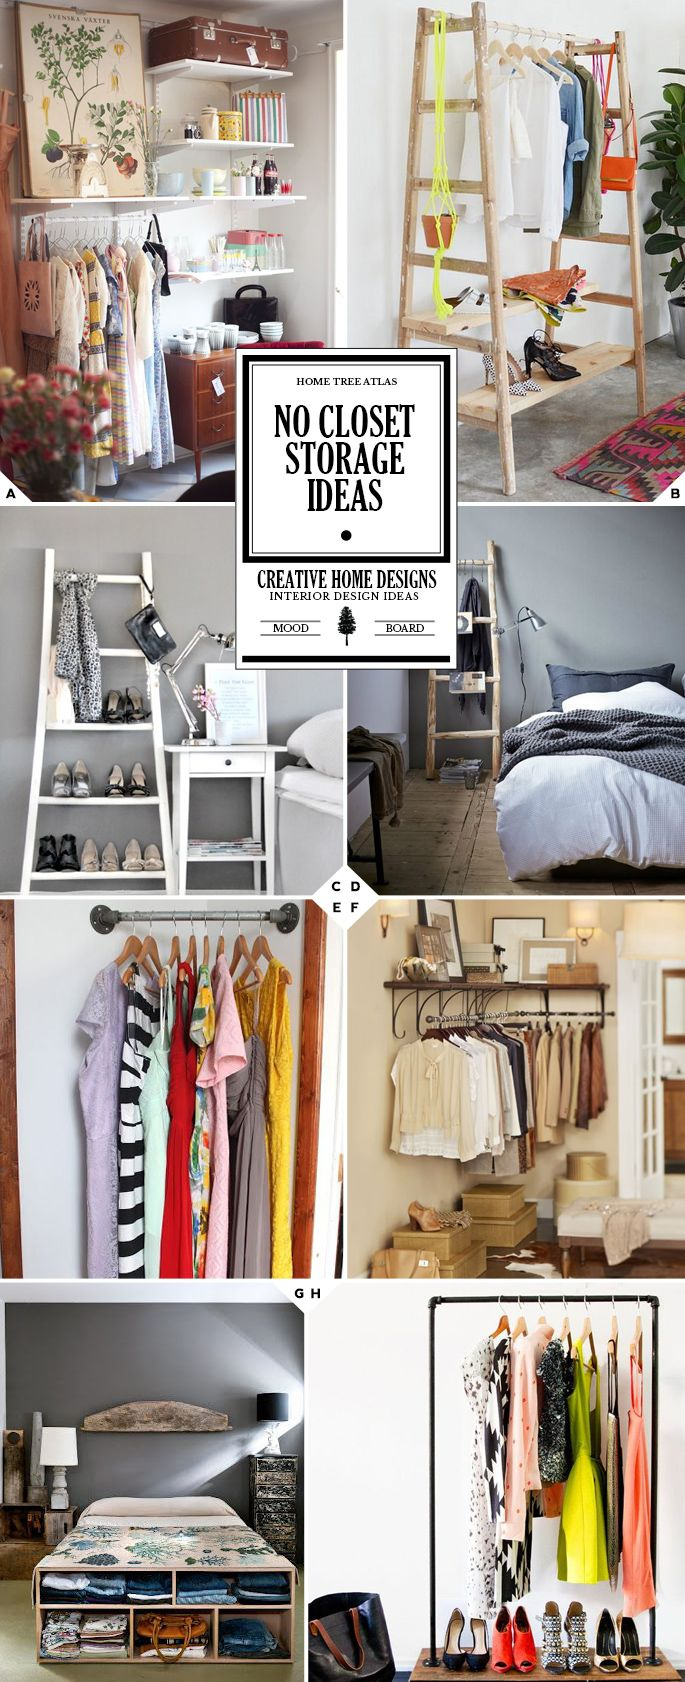 Getting creative no closet solutions and storage ideas - Room with no closet ...